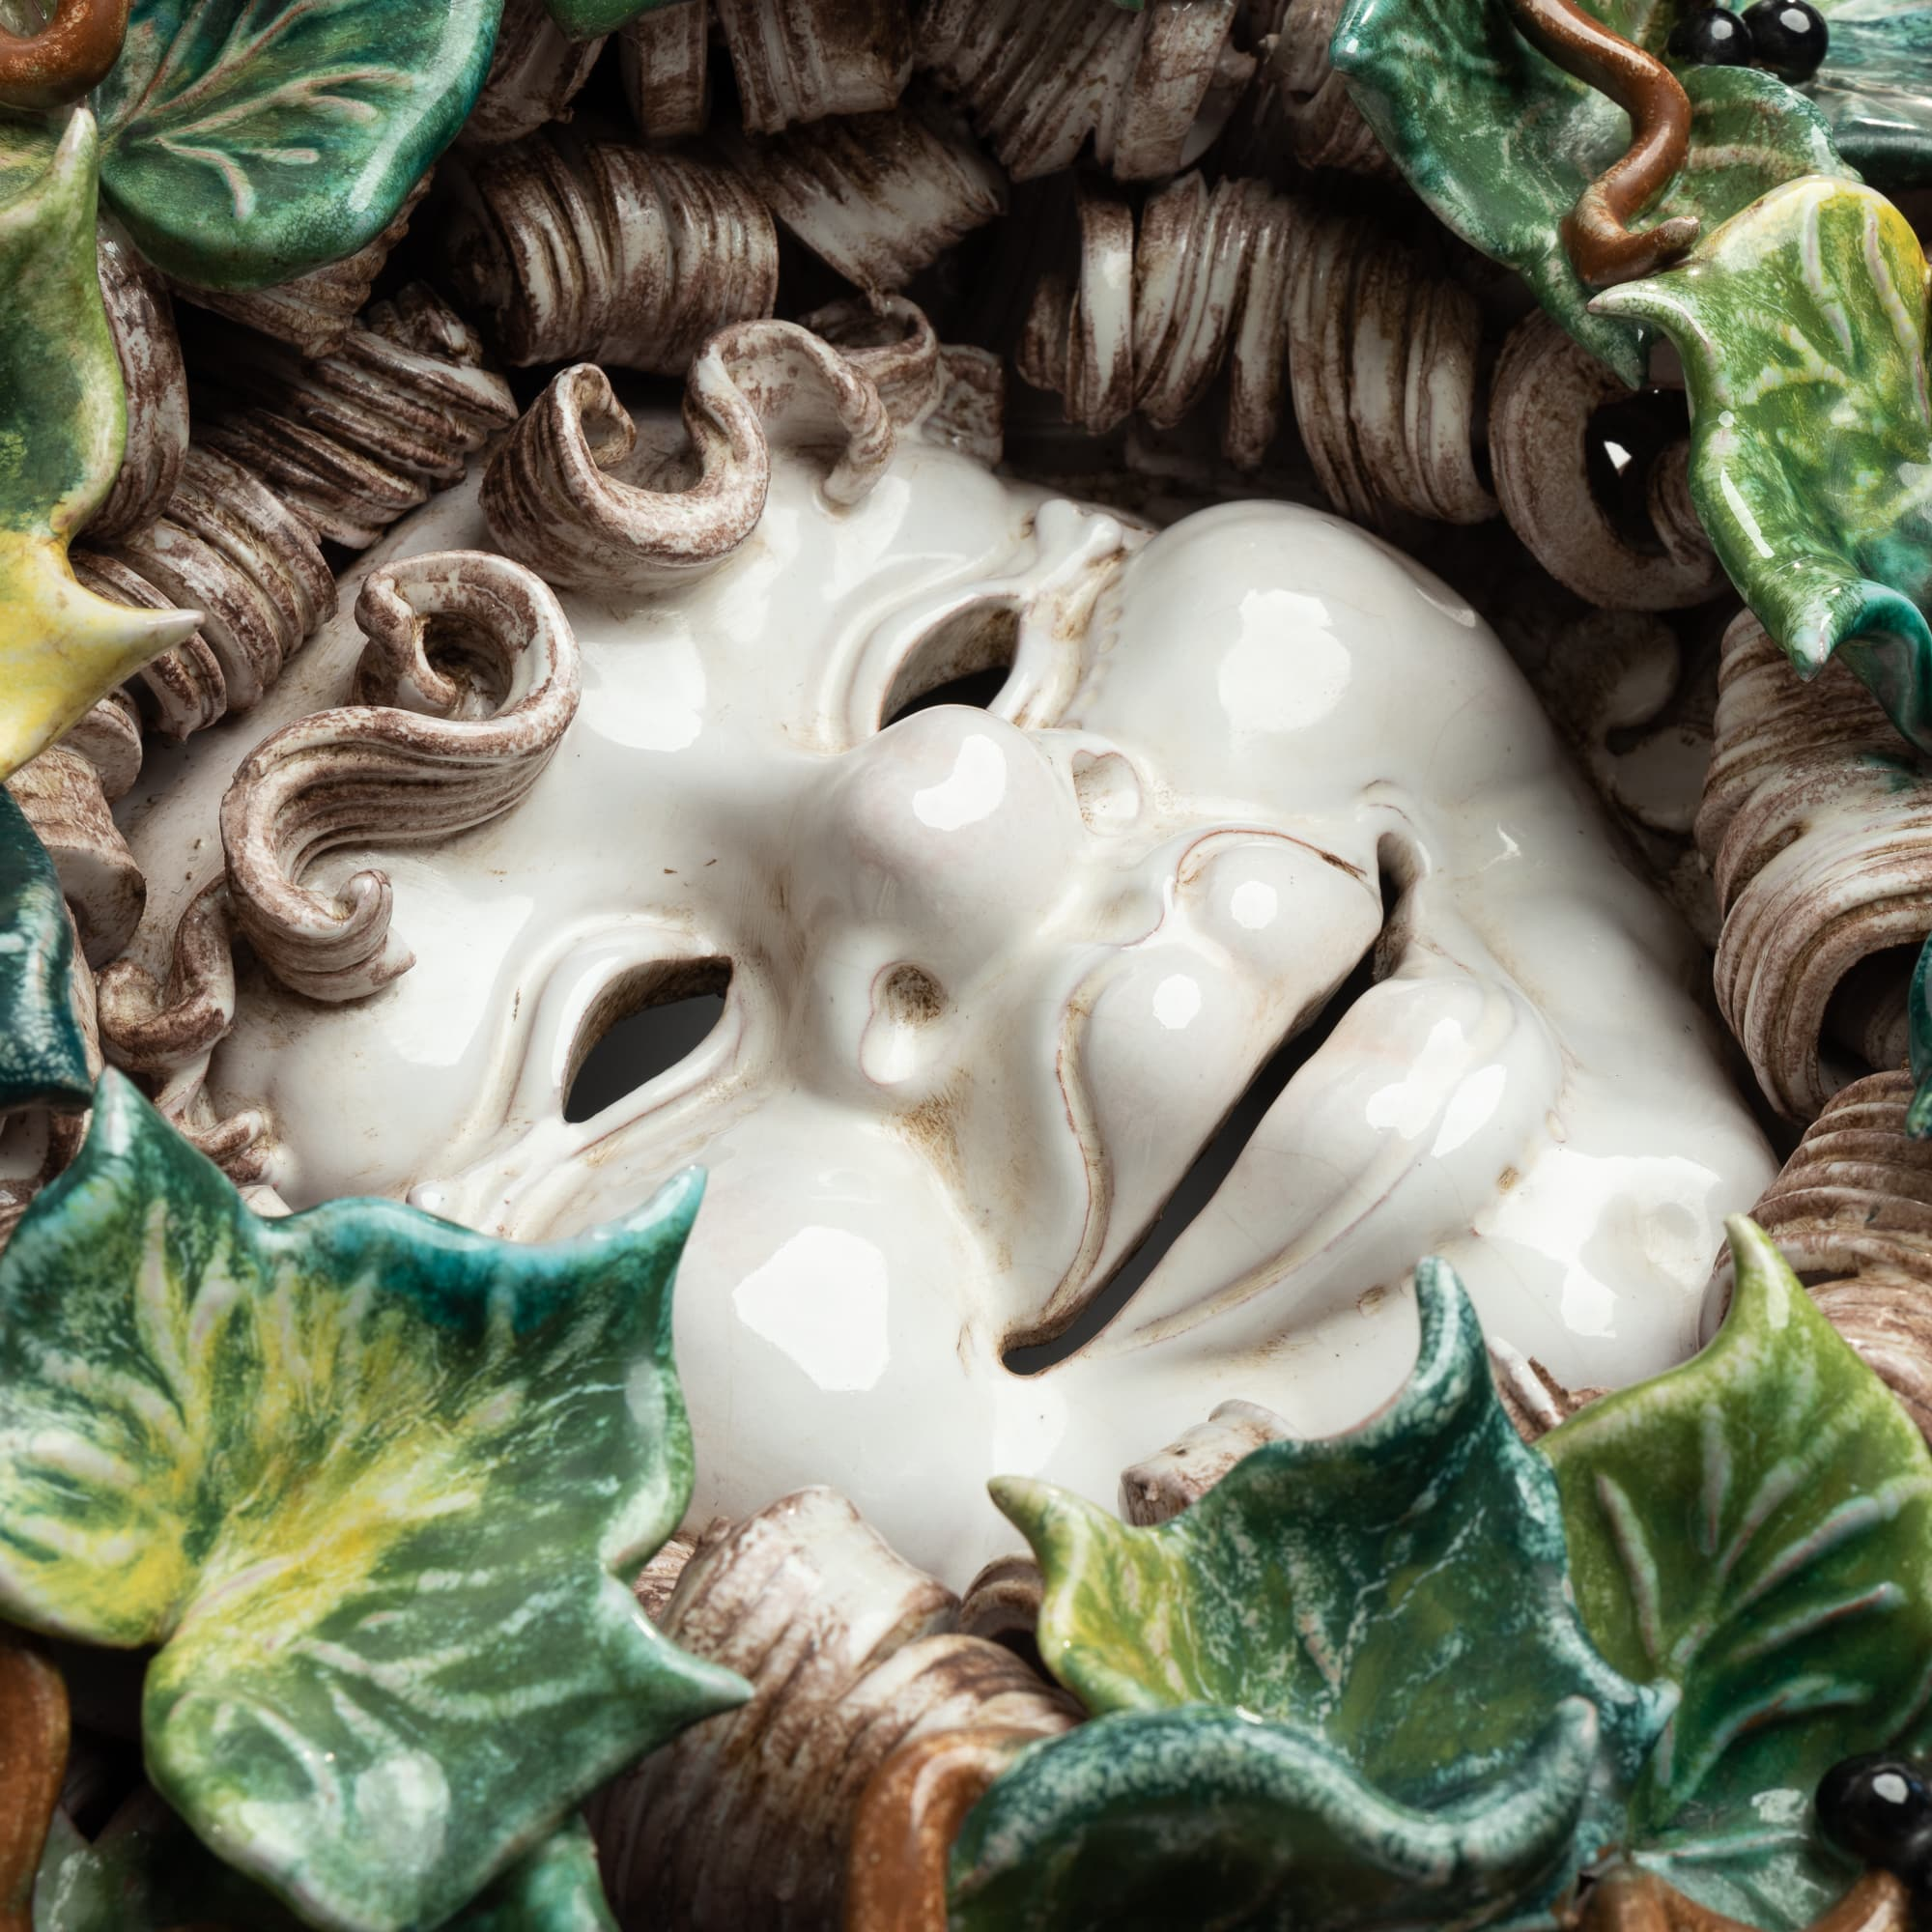 Bacchus Mask with IVY